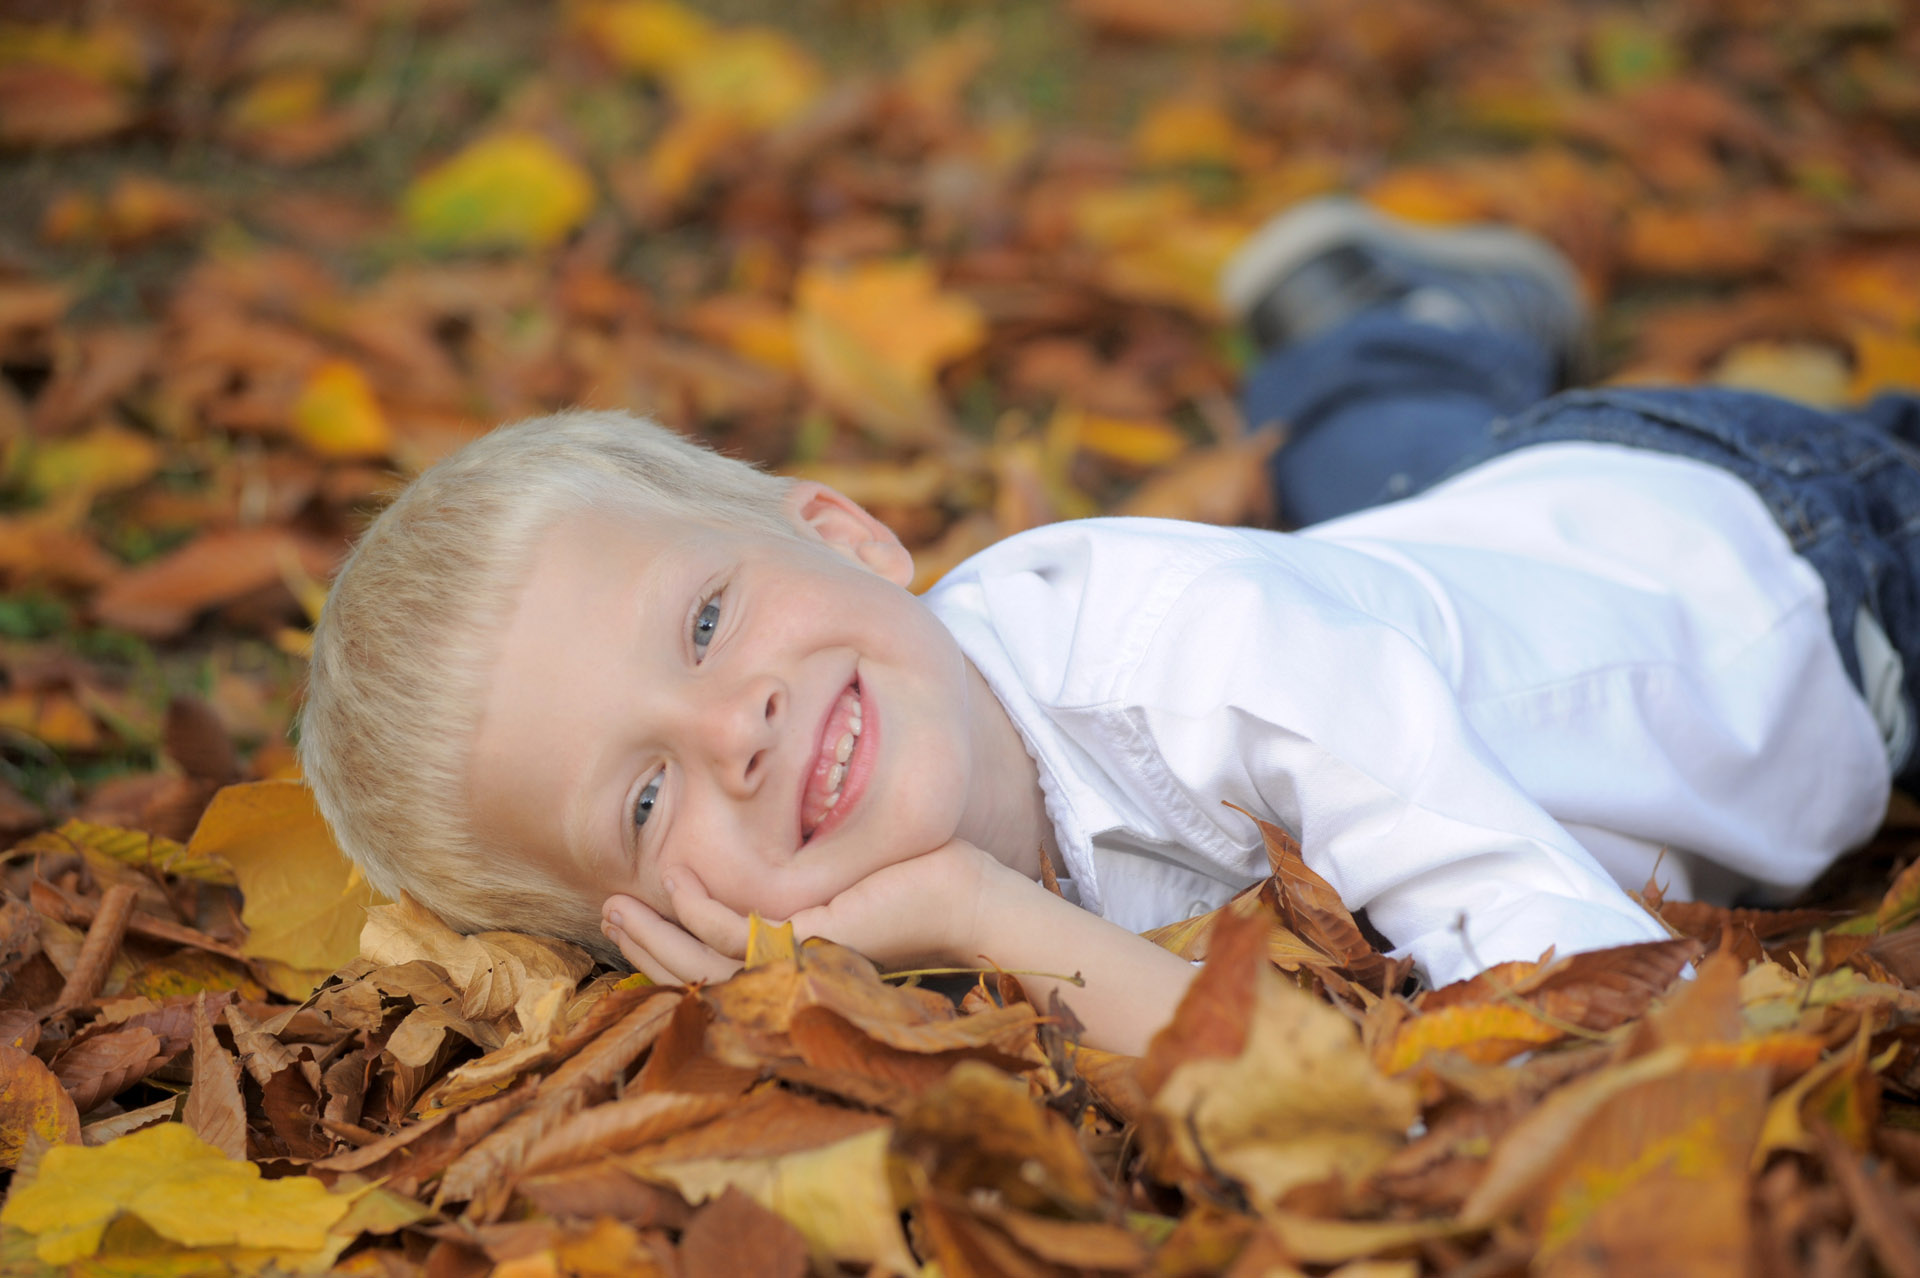 Best Detroit children photographer's photos of a young boy playing in the leaves in the metro Detroit, Michigan area.